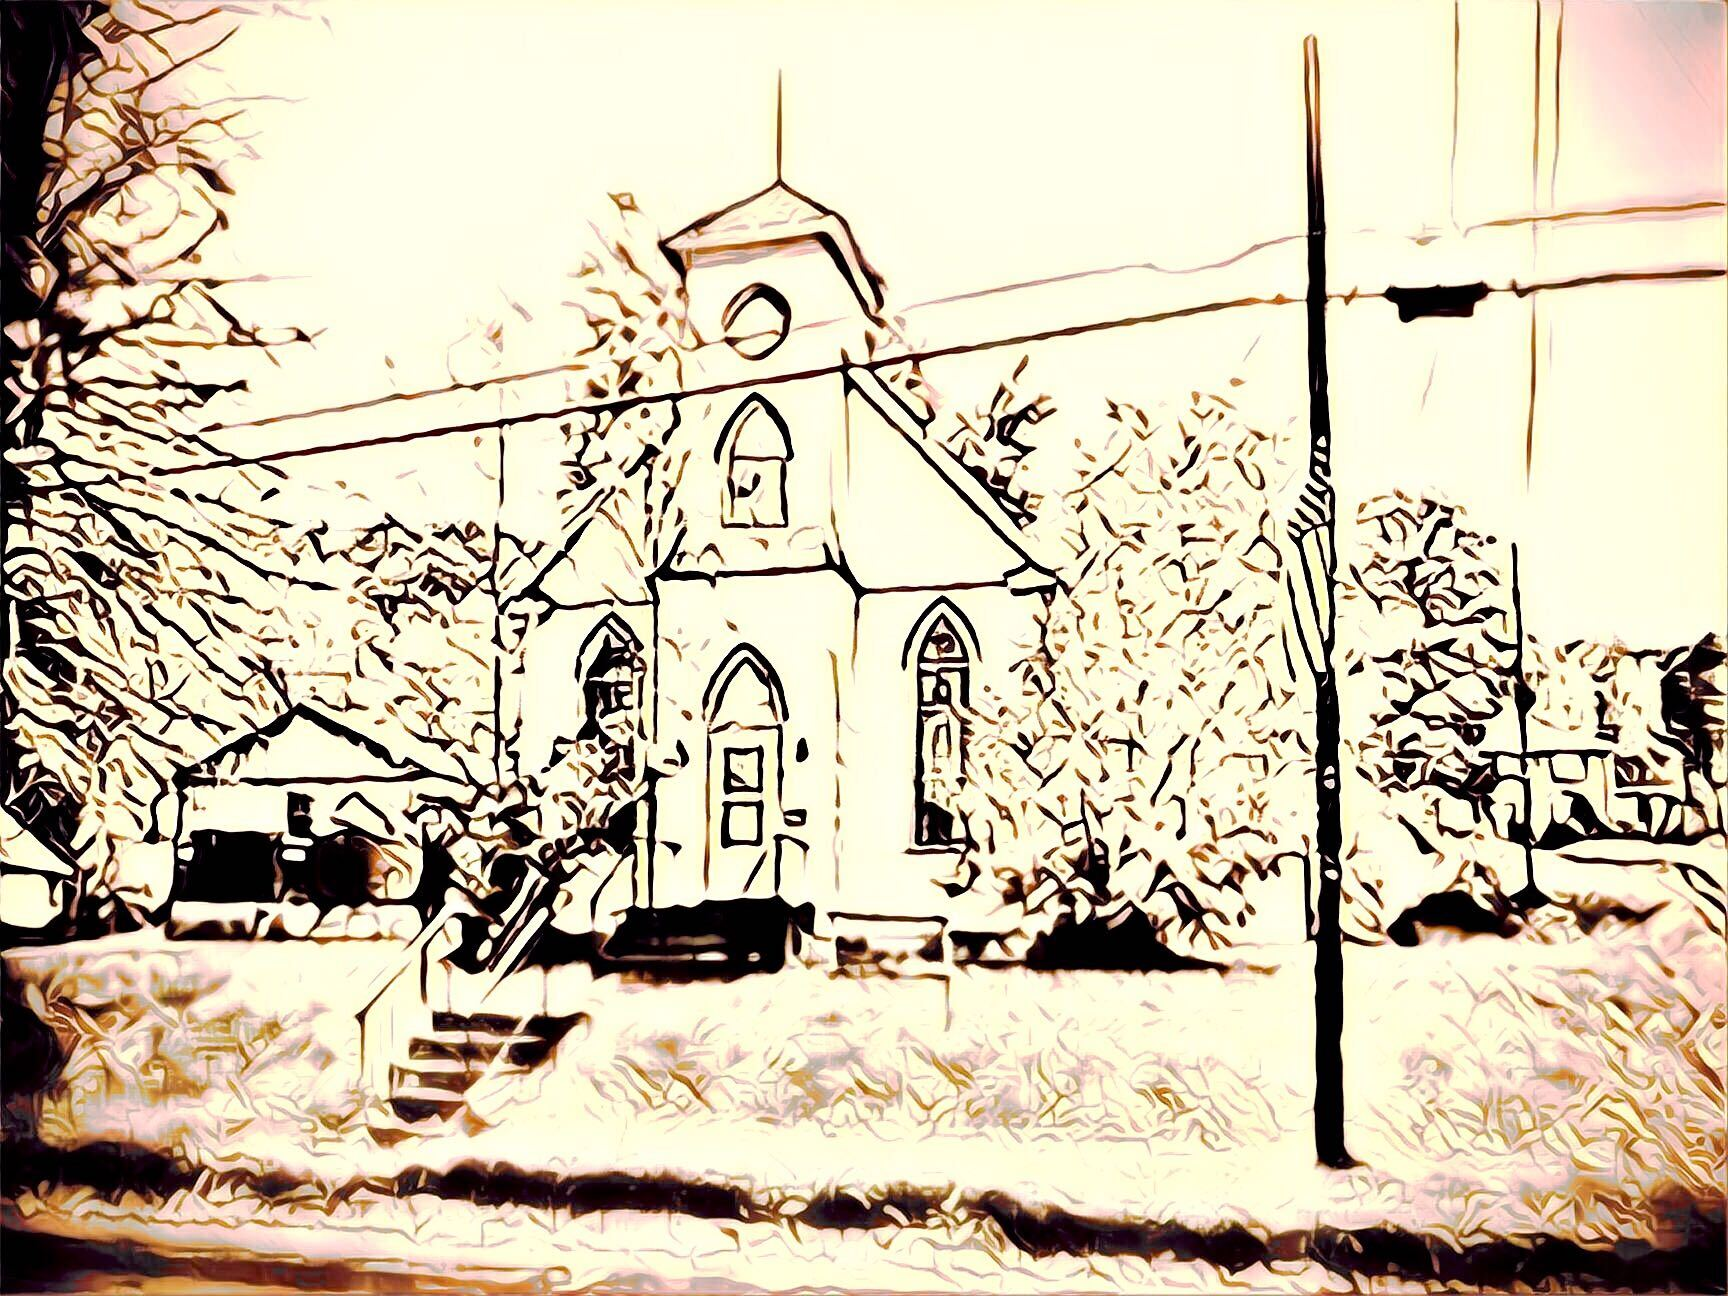 overexposed line drawing of a church